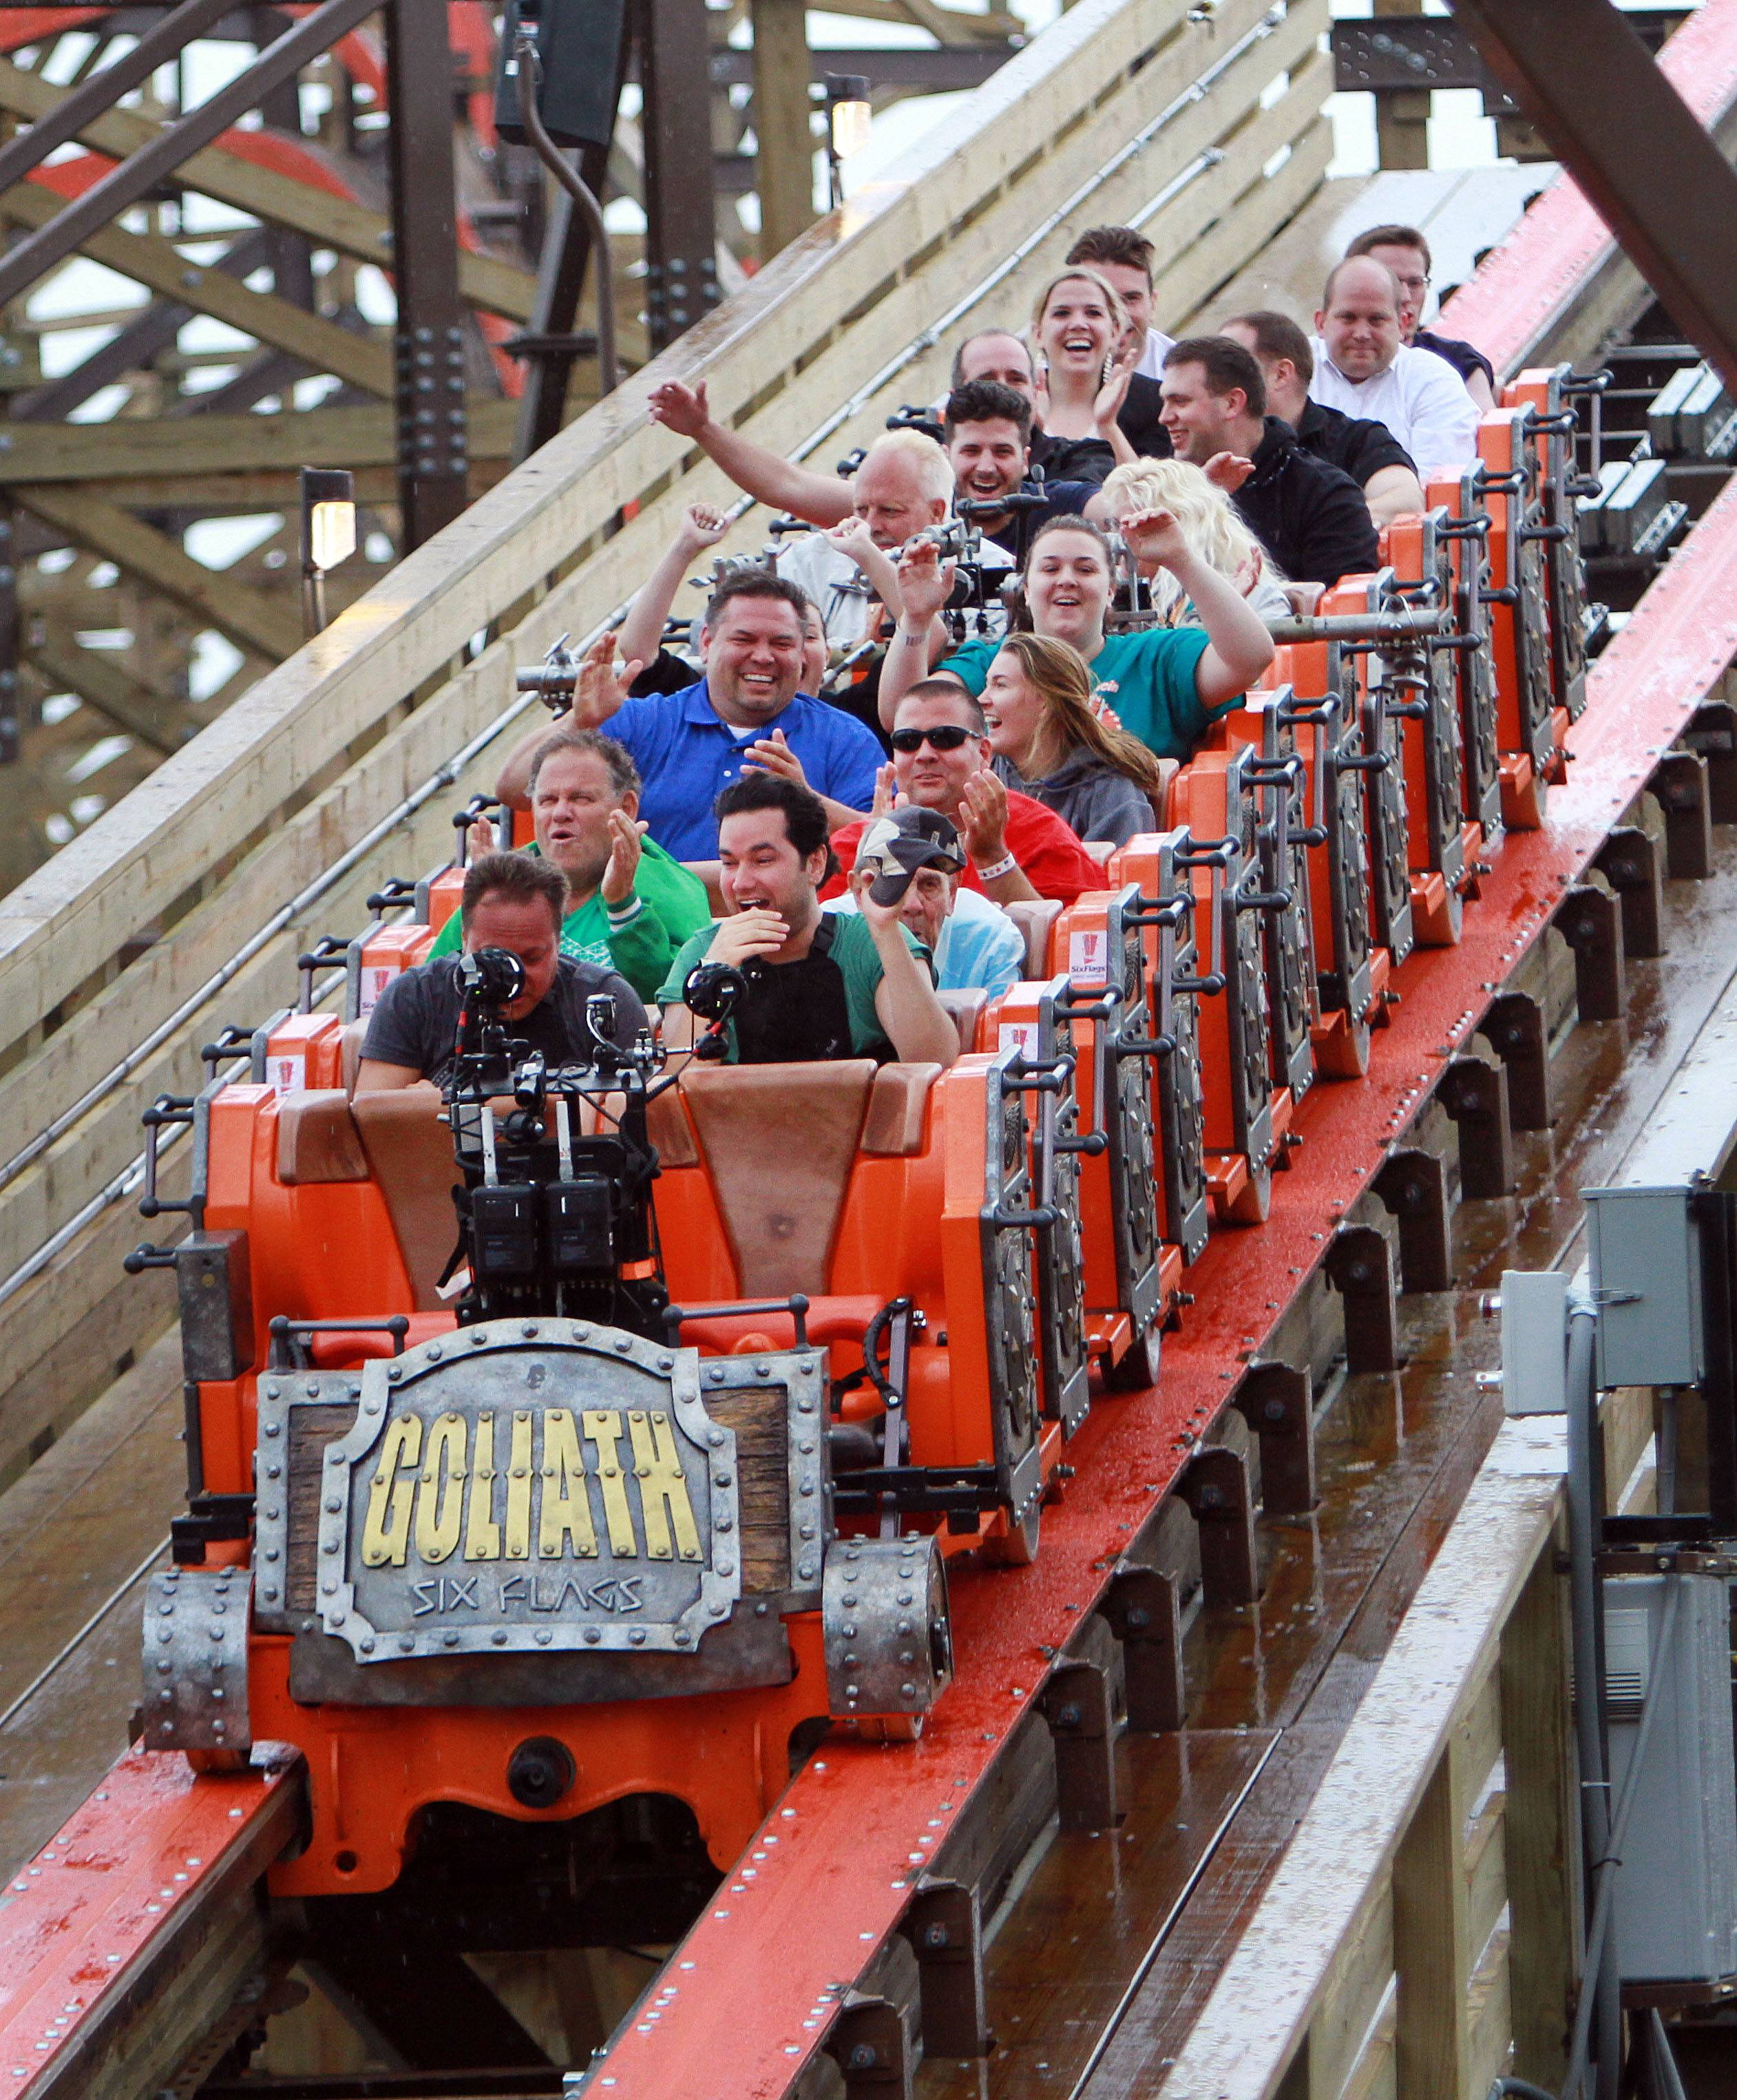 Riders take a spin on the new wooden roller coaster Goliath at Six Flags Great America in Gurnee this week.